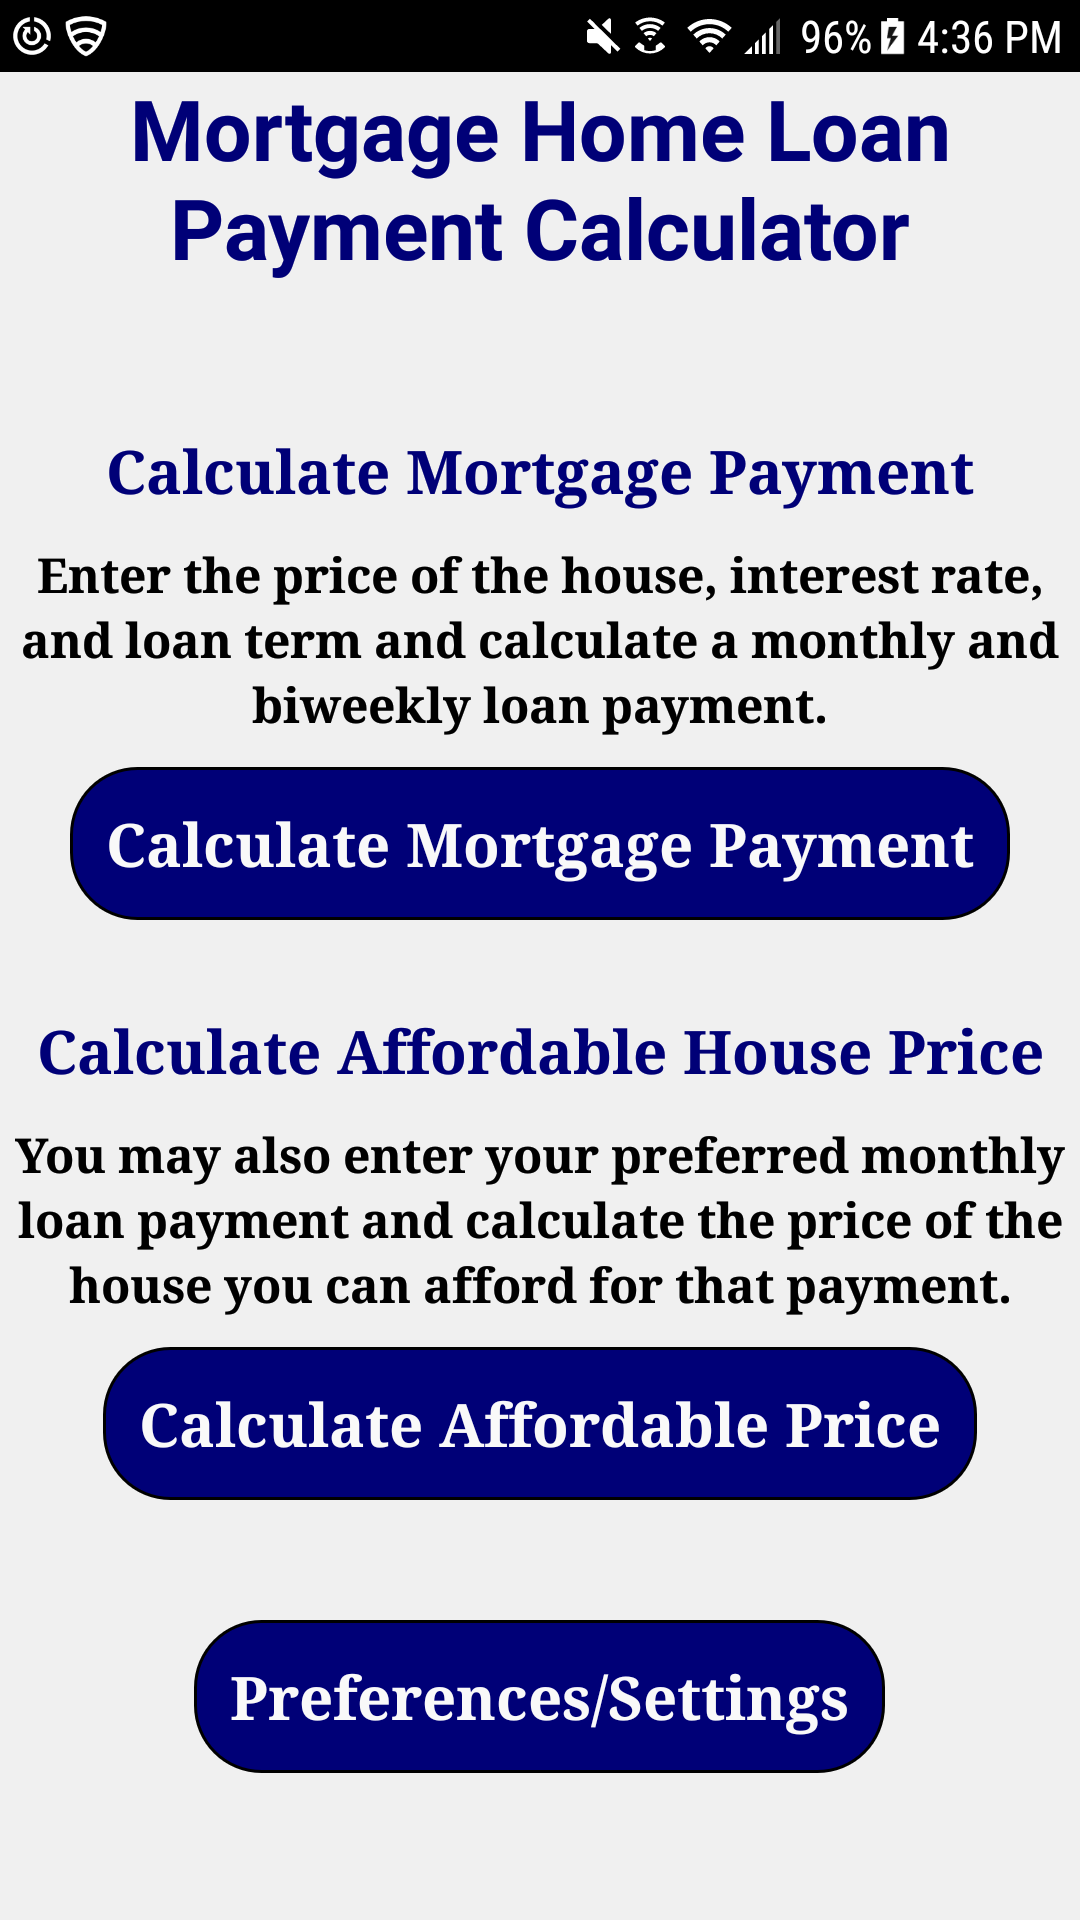 amazon com mortgage home loan payment calculator pro appstore for